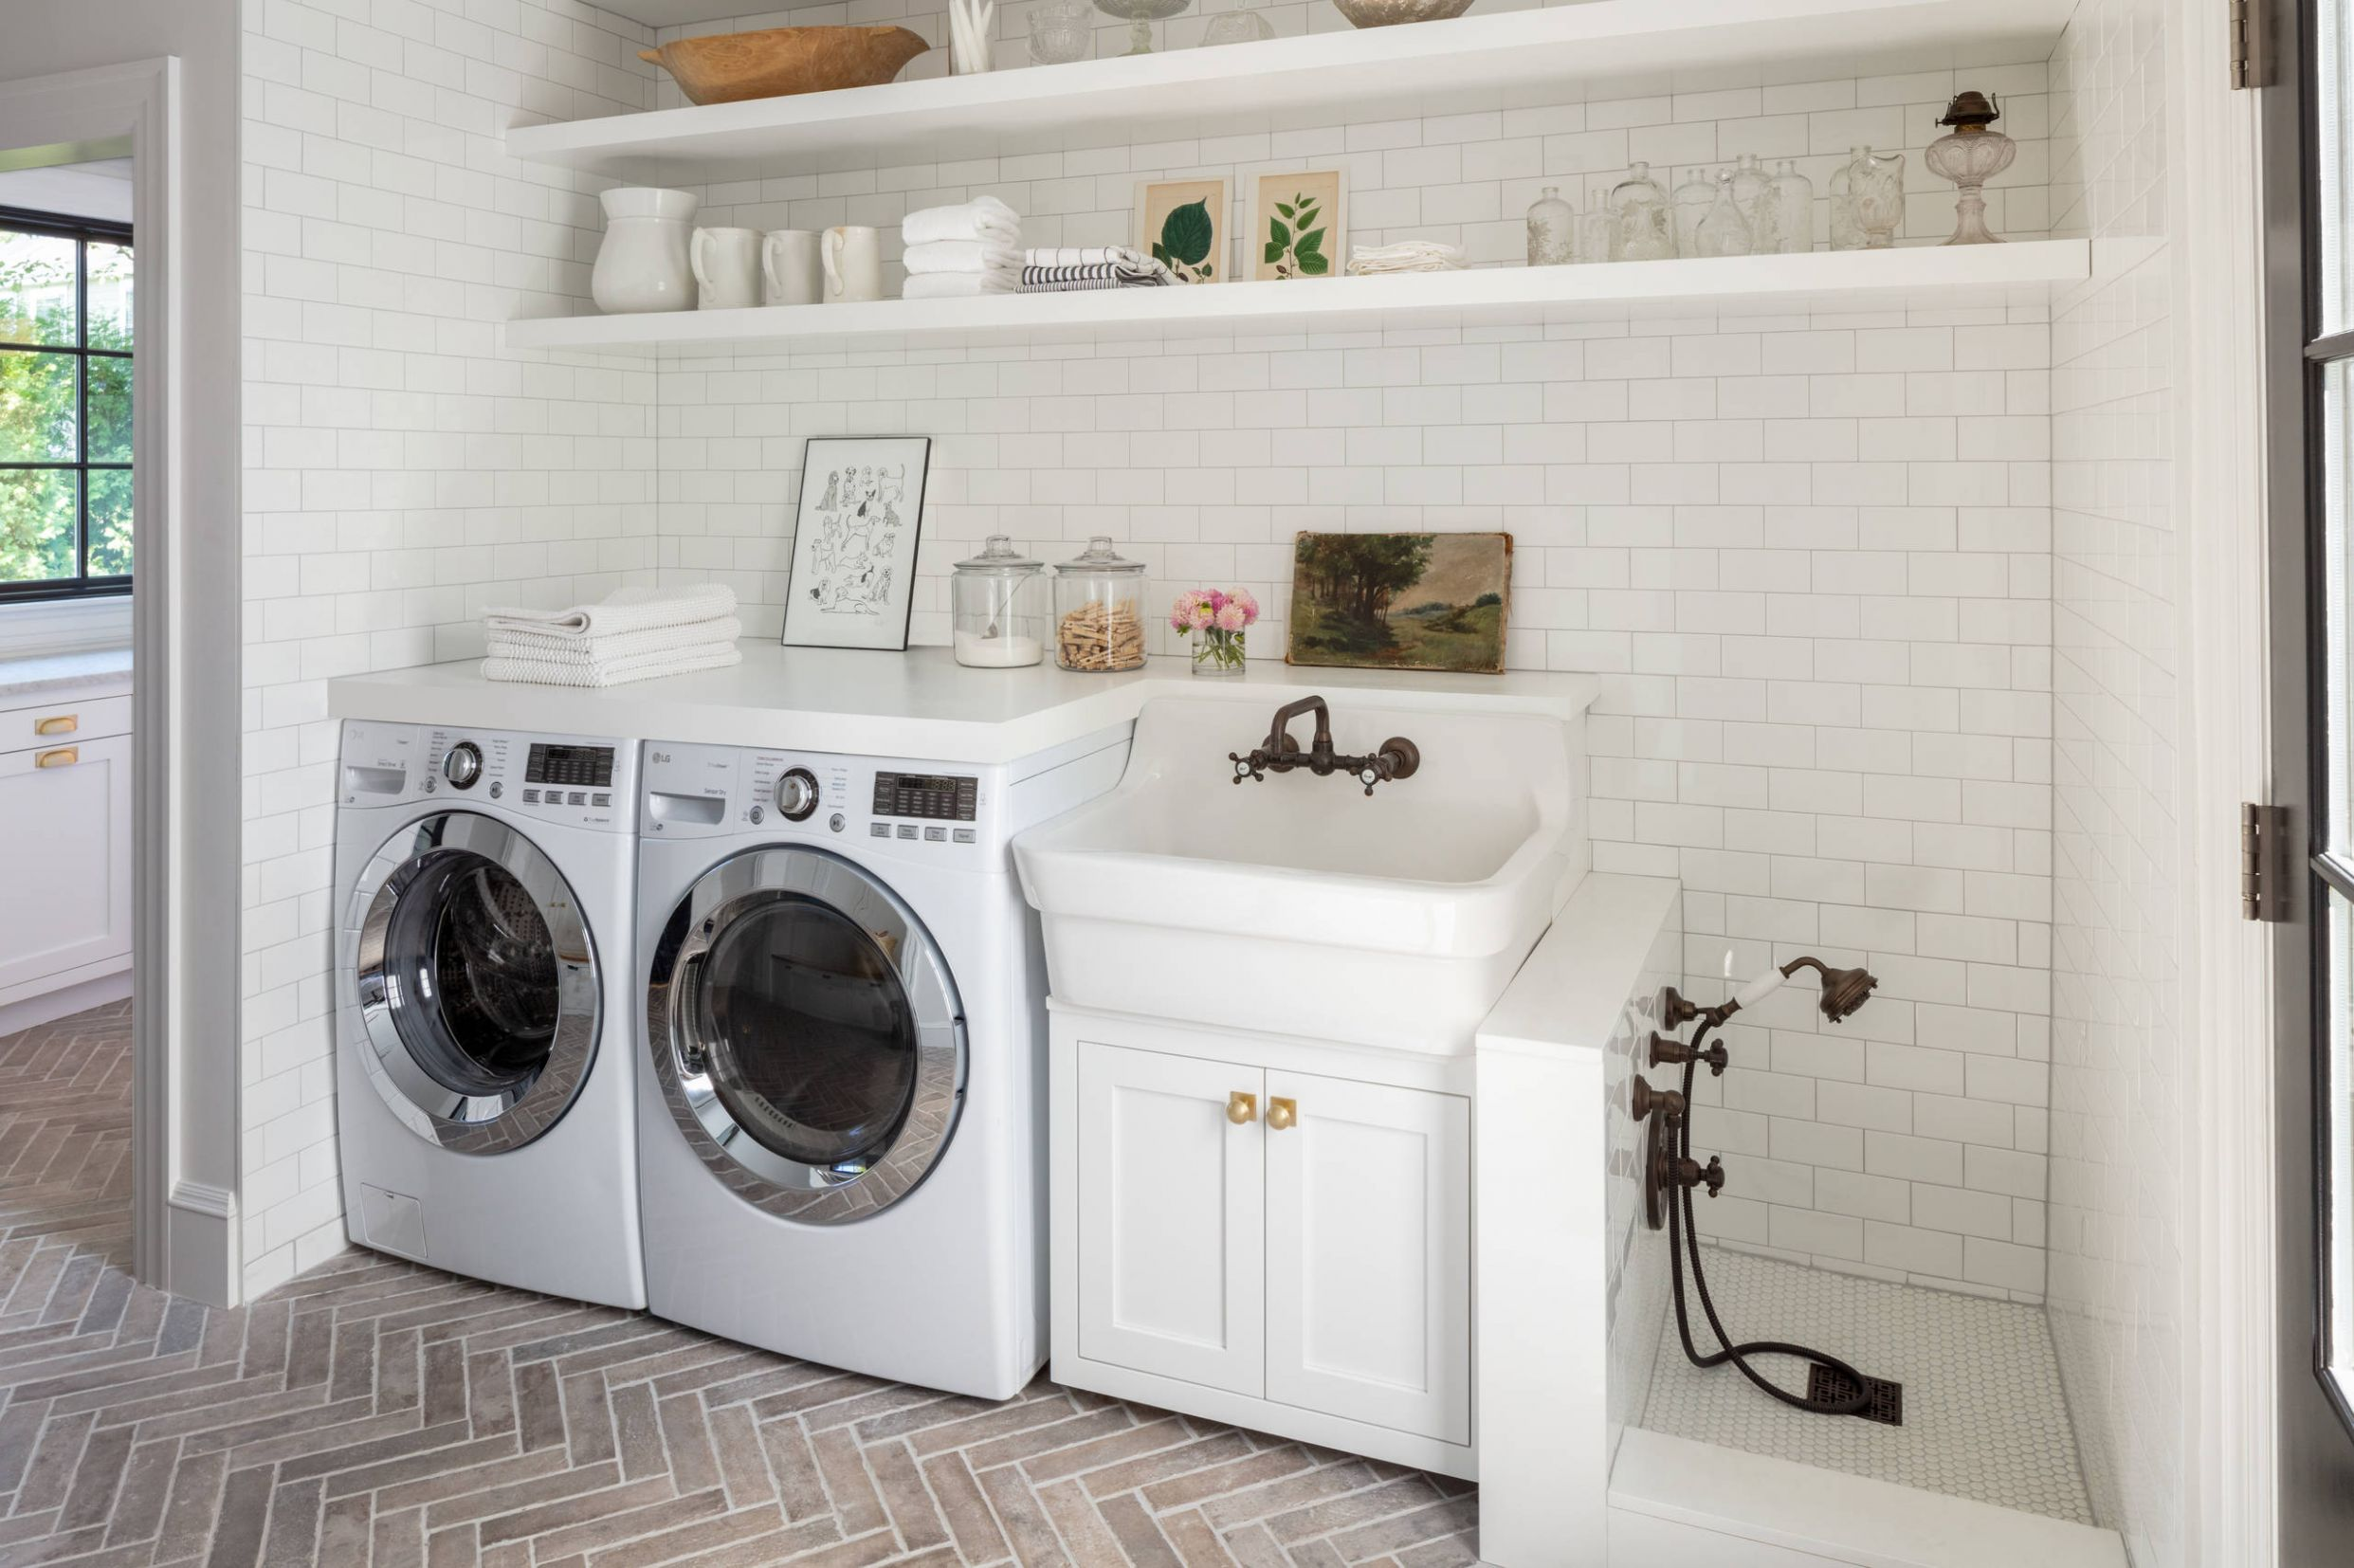 11 Beautiful Laundry Room Pictures & Ideas | Houzz - laundry room bar ideas